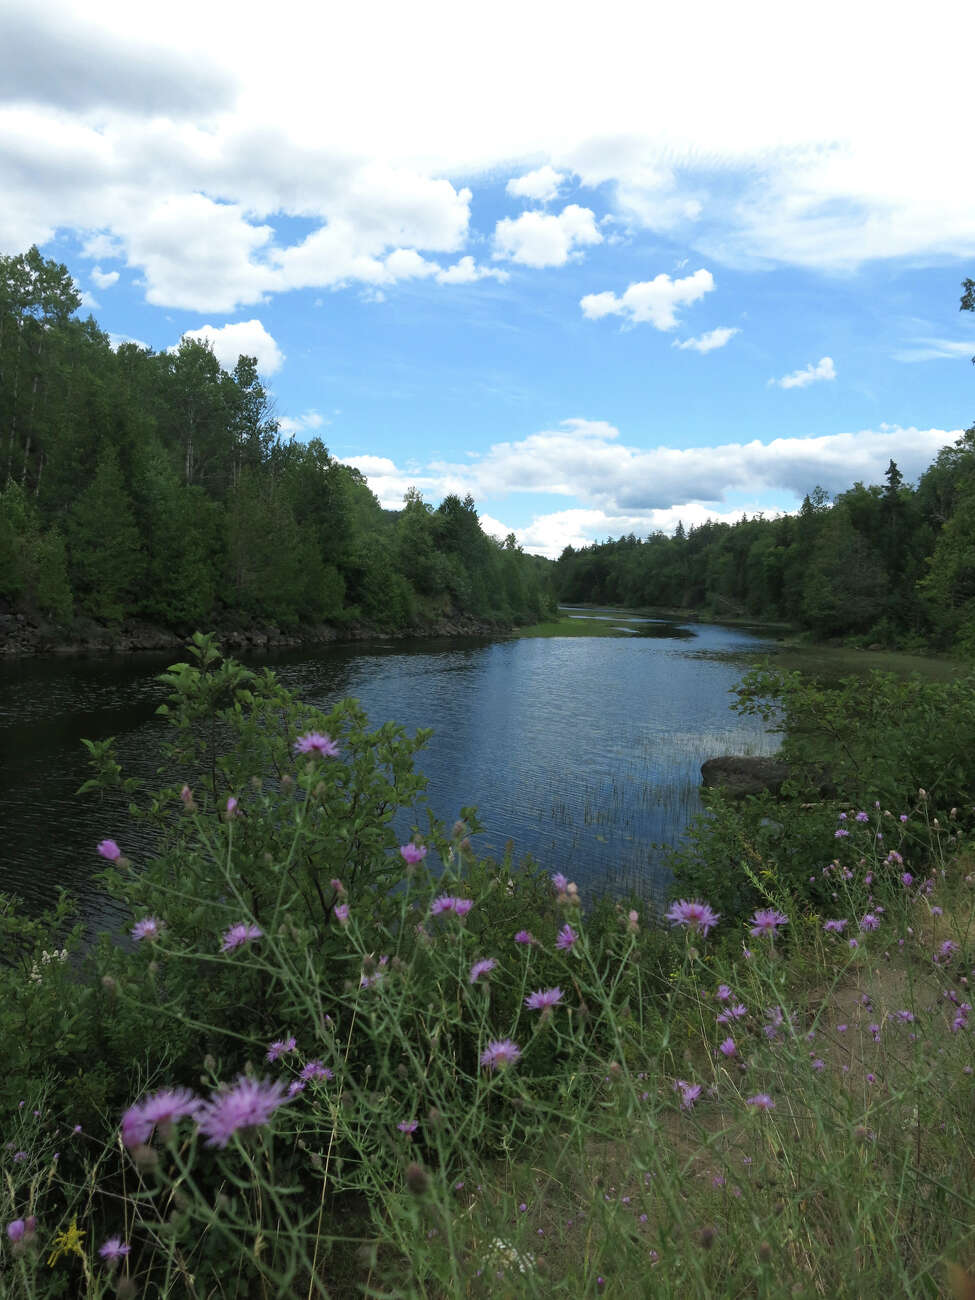 This Aug. 8, 2015 photo shows the Hudson River near an abandoned iron mine in the Adirondacks in Tahawus, NY. A short-line railroad plans to supplement its revenues by storing hundreds of empty oil tank cars on unused tracks that end at the mine. Environmentalists are against the plan, saying it would hurt tourism in a place that?'s popular with hikers and paddlers. The tracks are close to the river in some places but the rail operator says the tank cars will be in a forested area out of public view. (AP Photo/Mary Esch)